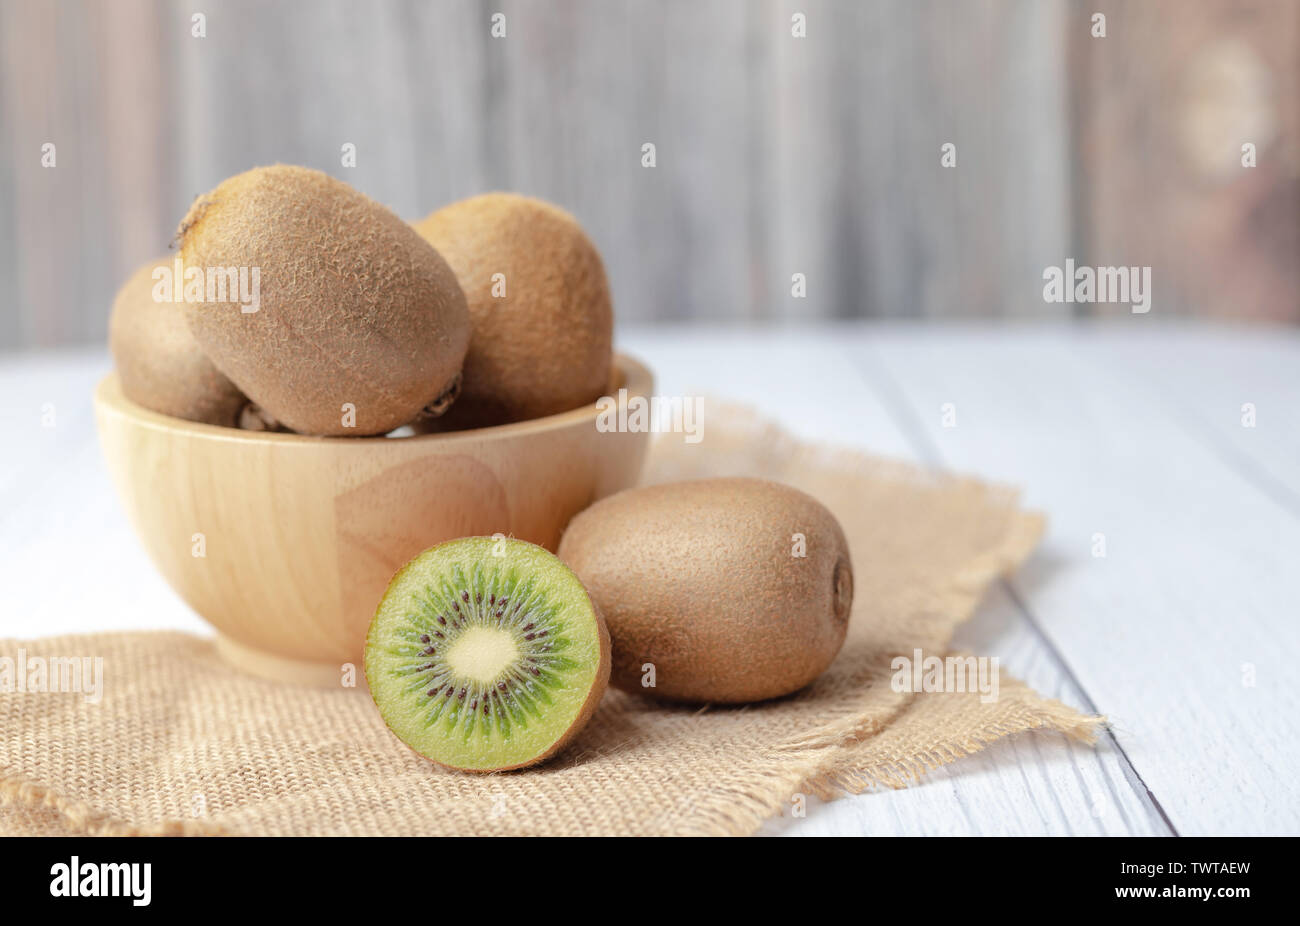 Kiwi fruits in a bowl, a half on the sack place on the wooden table with copy space. - Stock Image